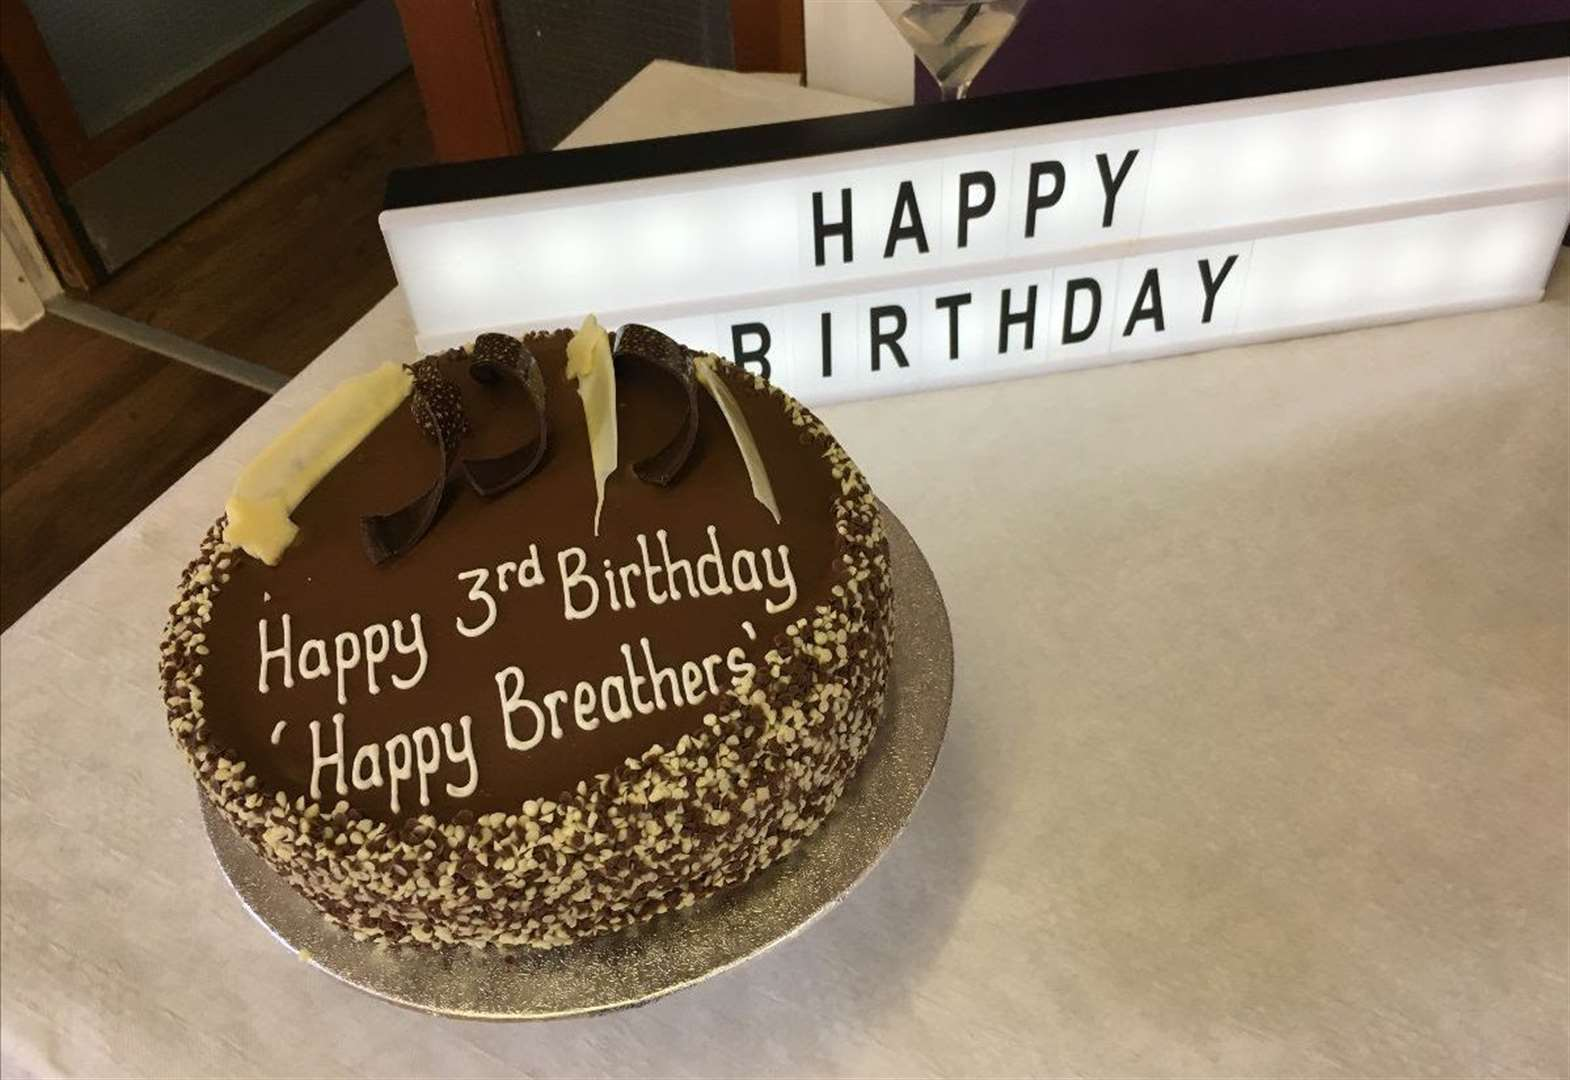 Third birthday for 'Happy Breathers' group